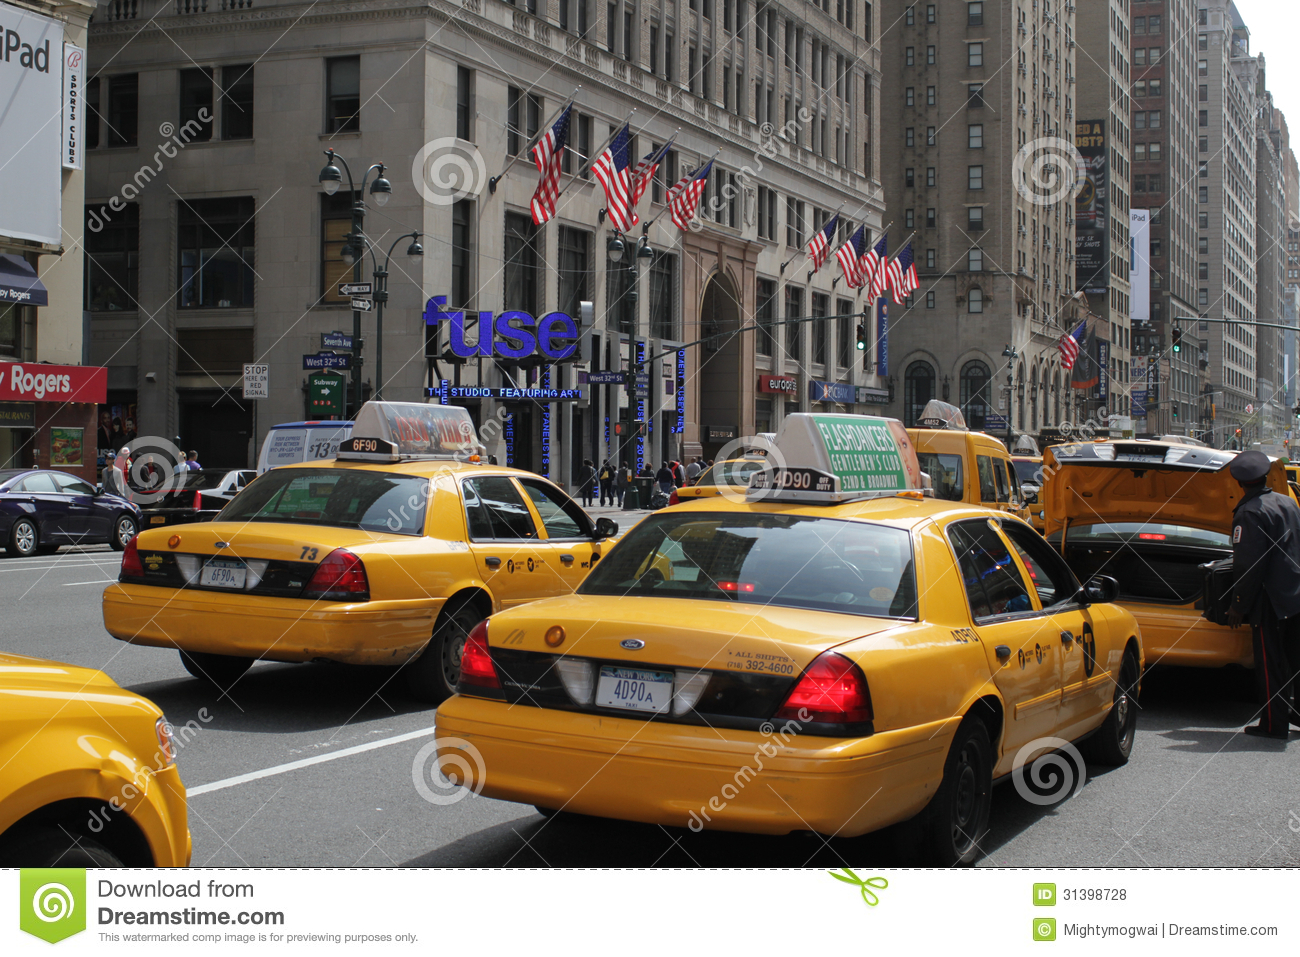 how to catch a cab in nyc